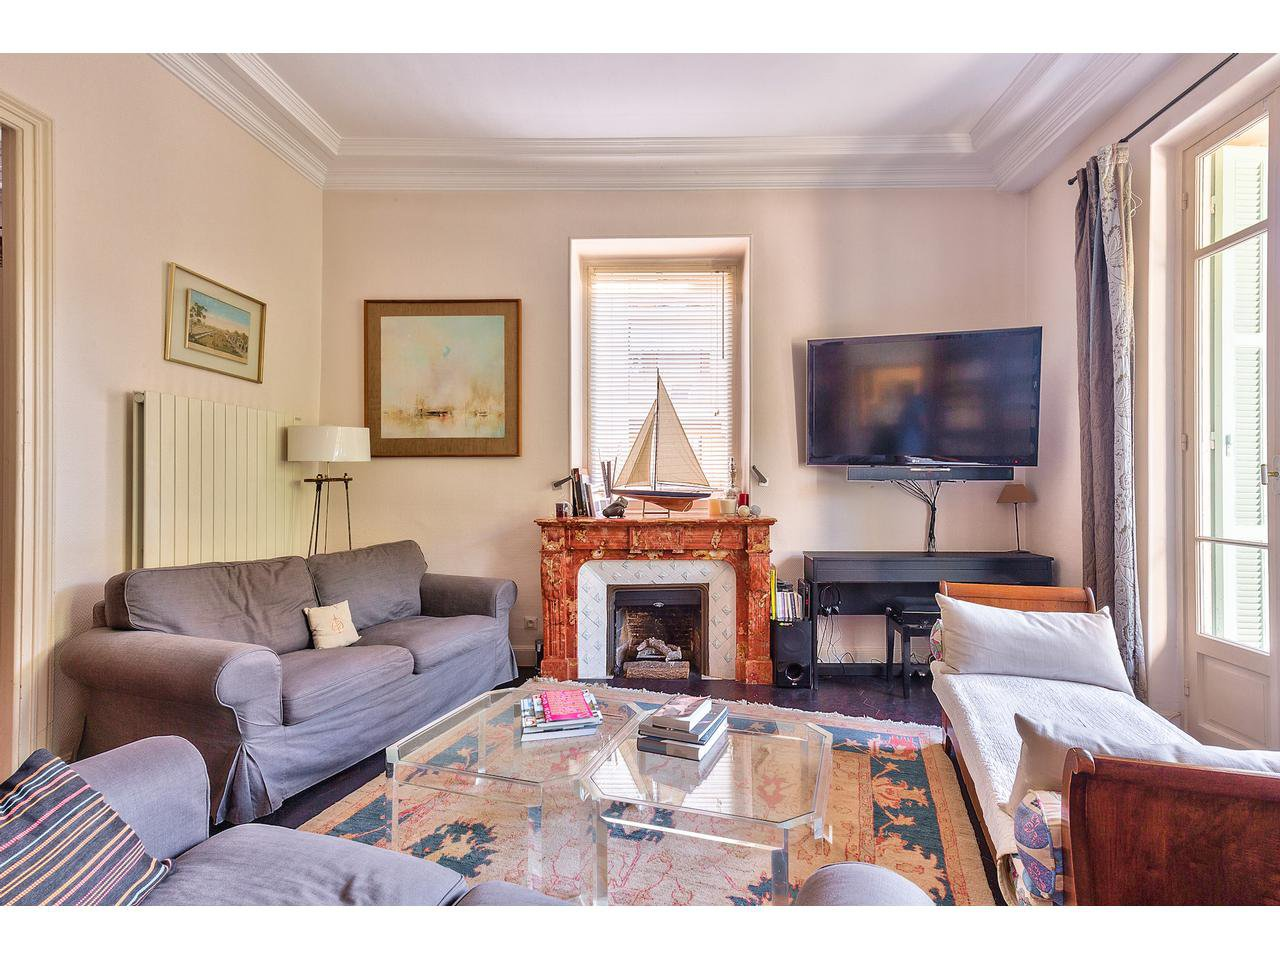 Sale Apartment - Nice Poètes